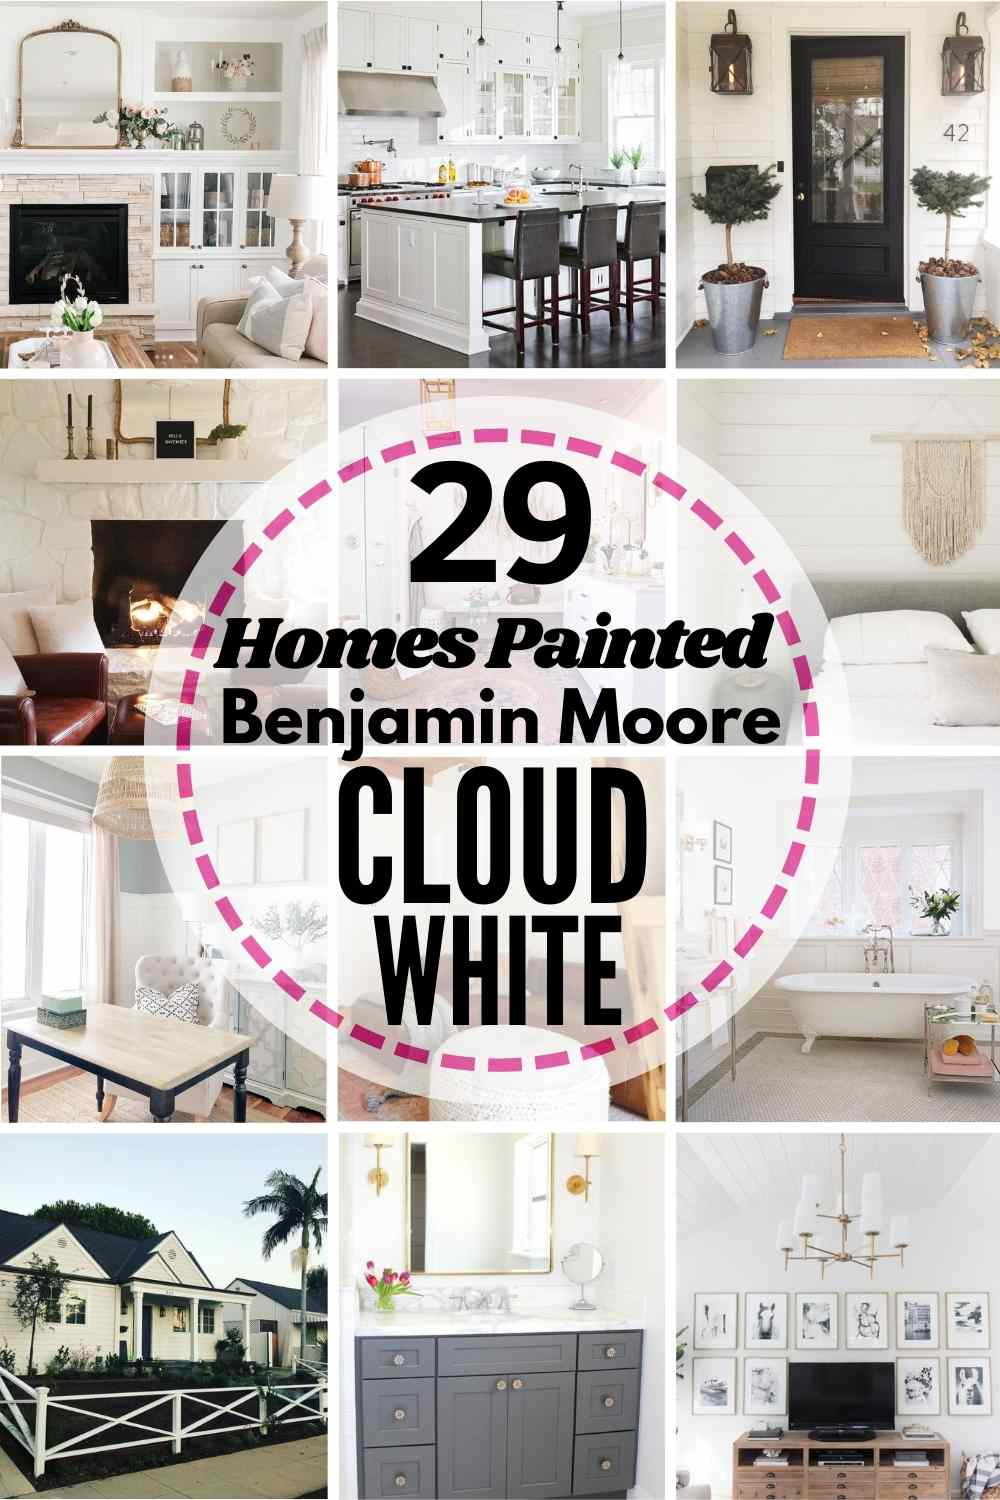 grid image of 12 homes painted in Benjamin Moore Cloud White